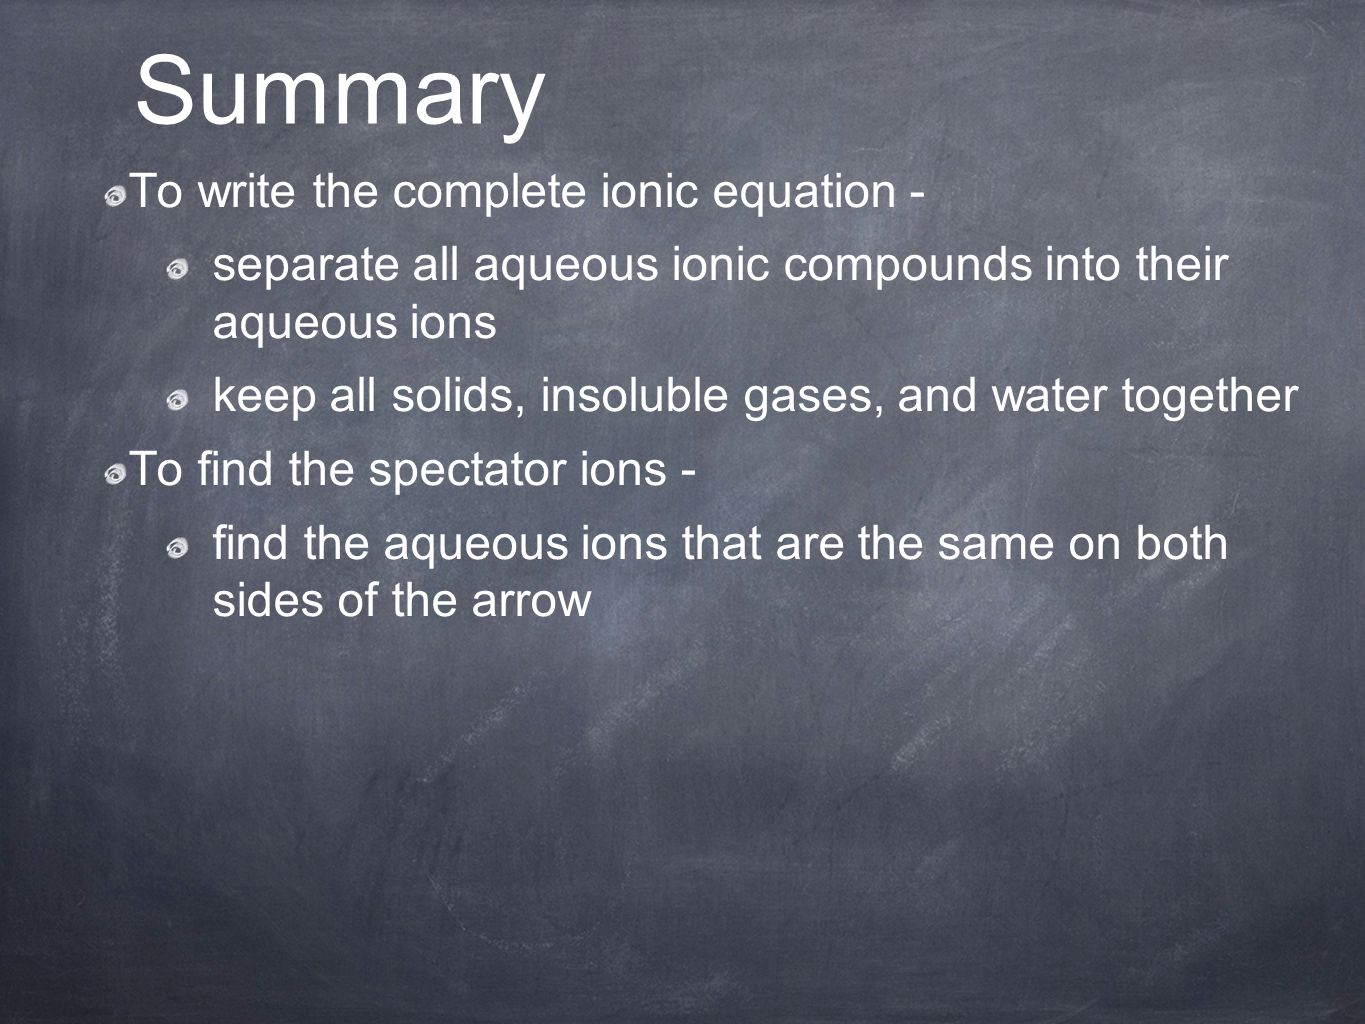 To write the complete ionic equation - separate all aqueous ionic compounds into their aqueous ions keep all solids, insoluble gases, and water together To find the spectator ions - find the aqueous ions that are the same on both sides of the arrow Summary